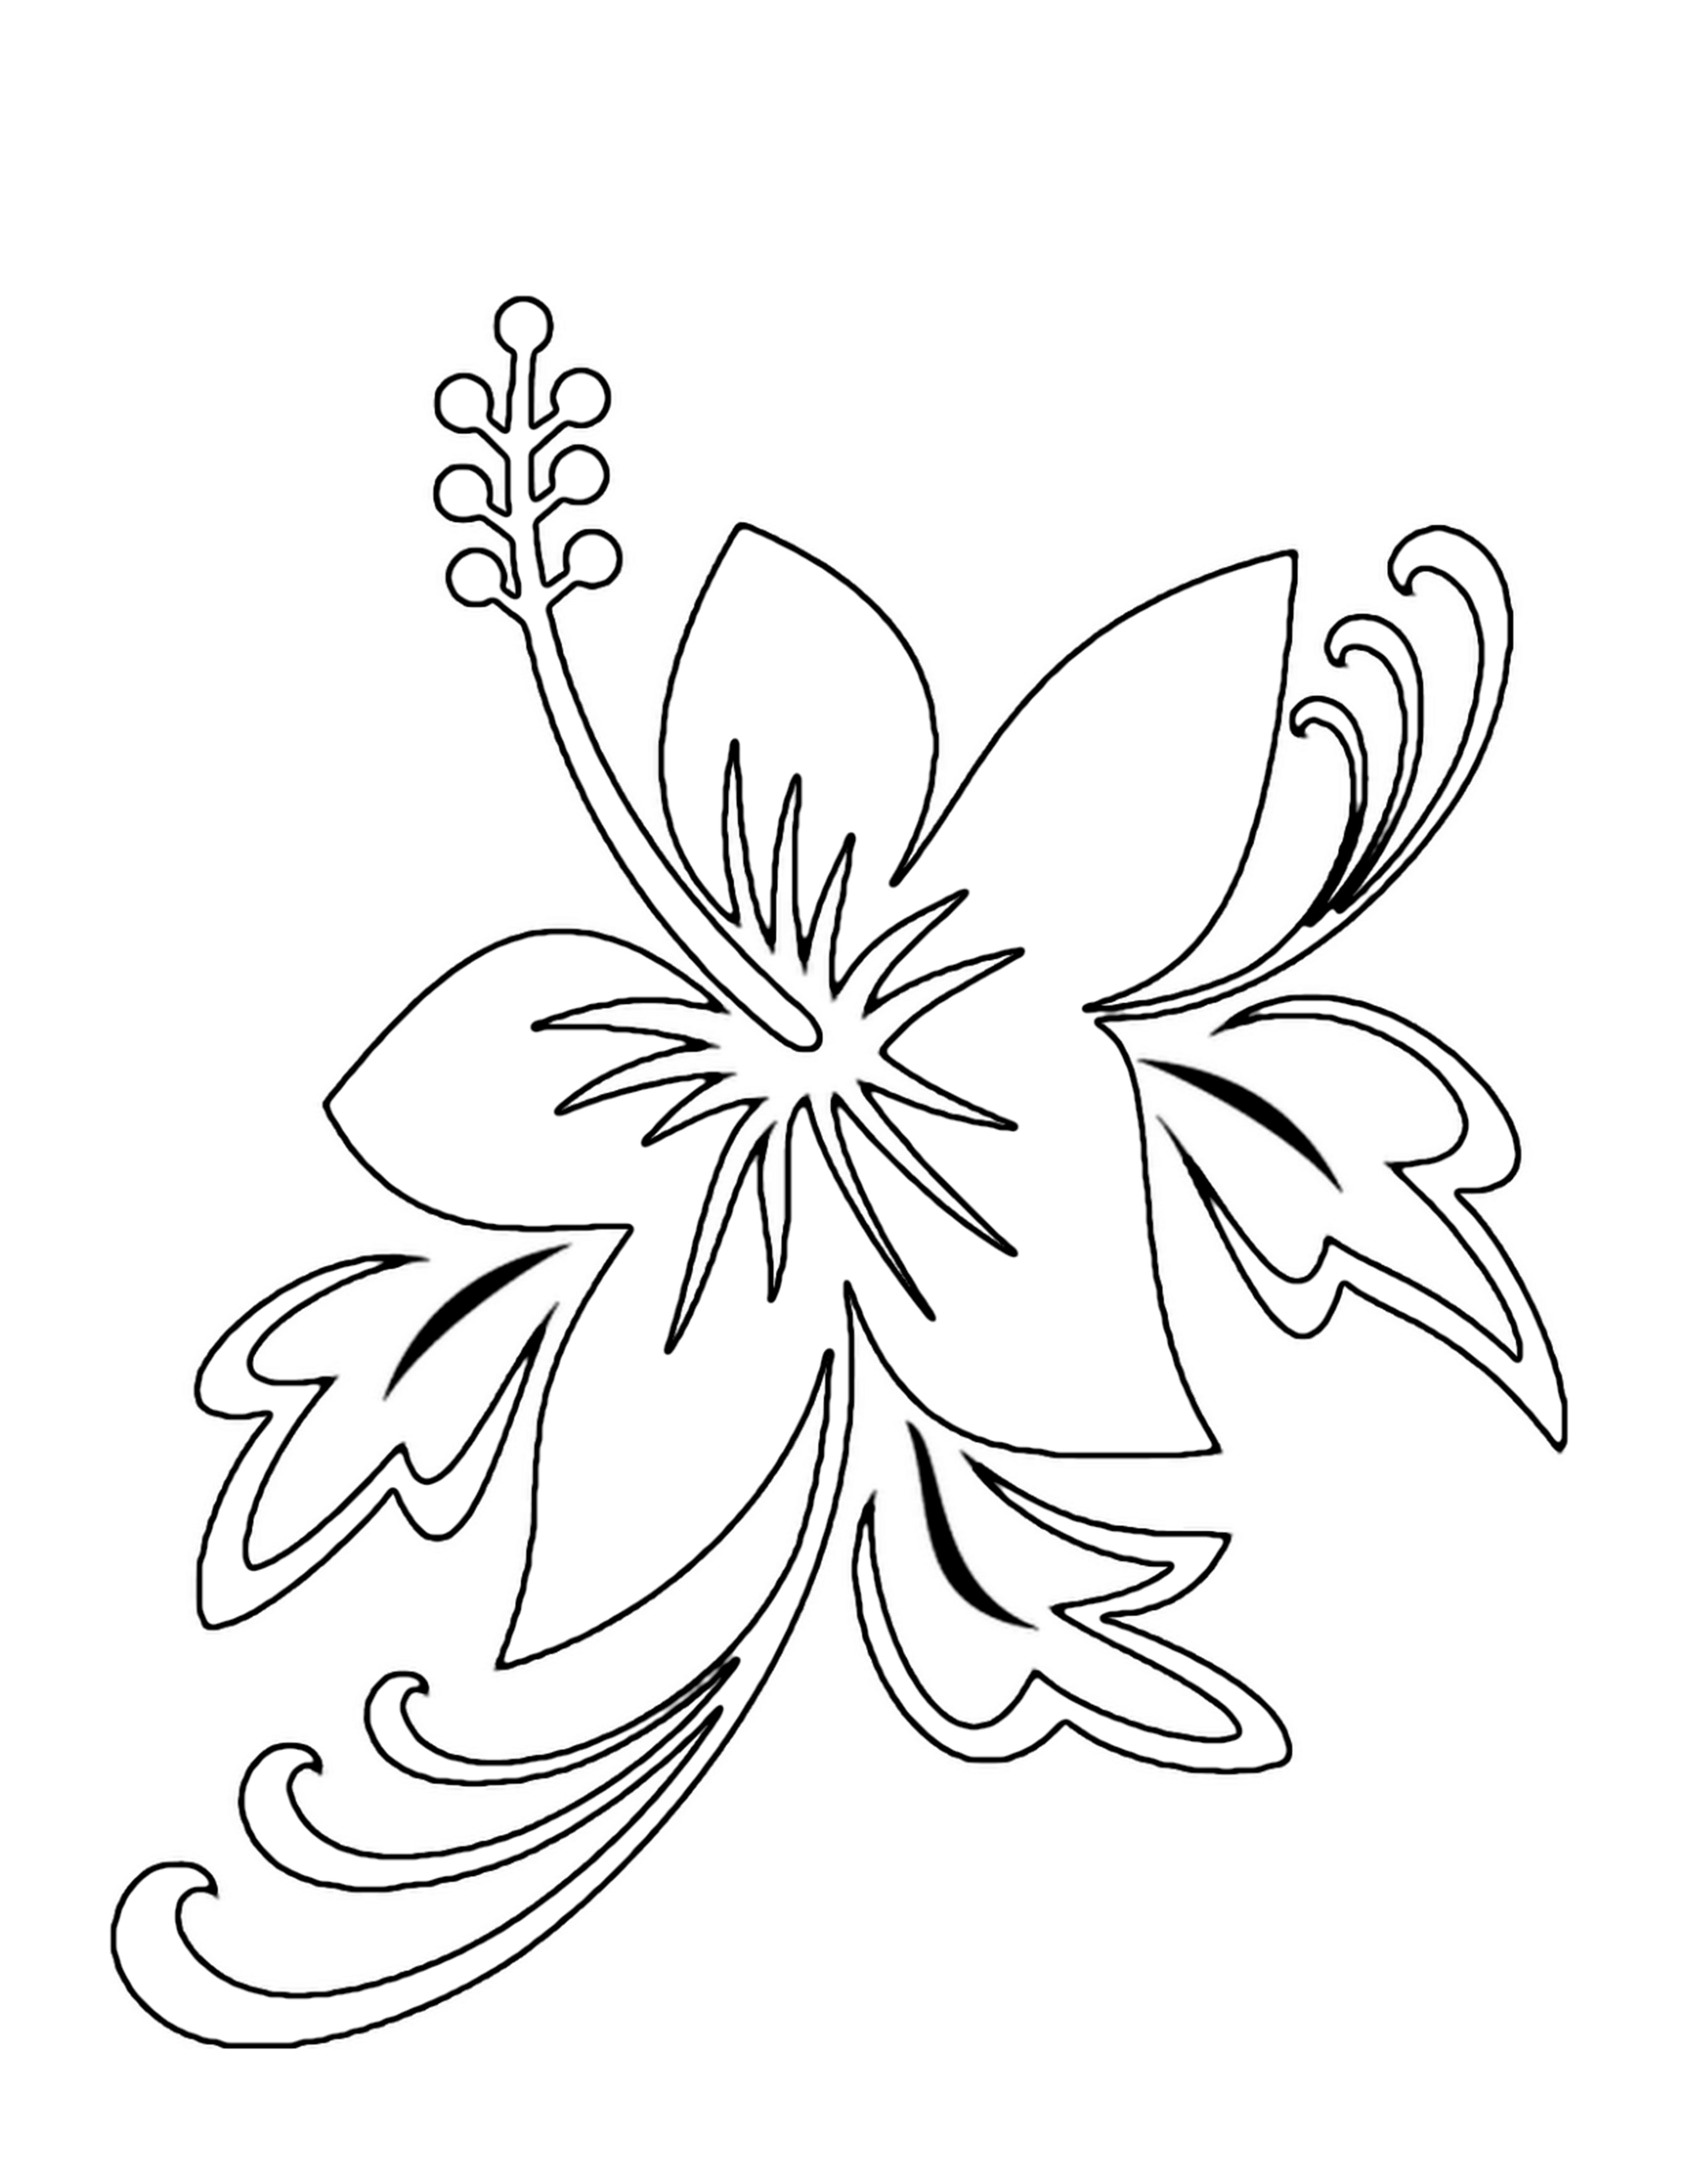 picture of flowers to print luxurious coloring flower picture lily free flower print to flowers of picture